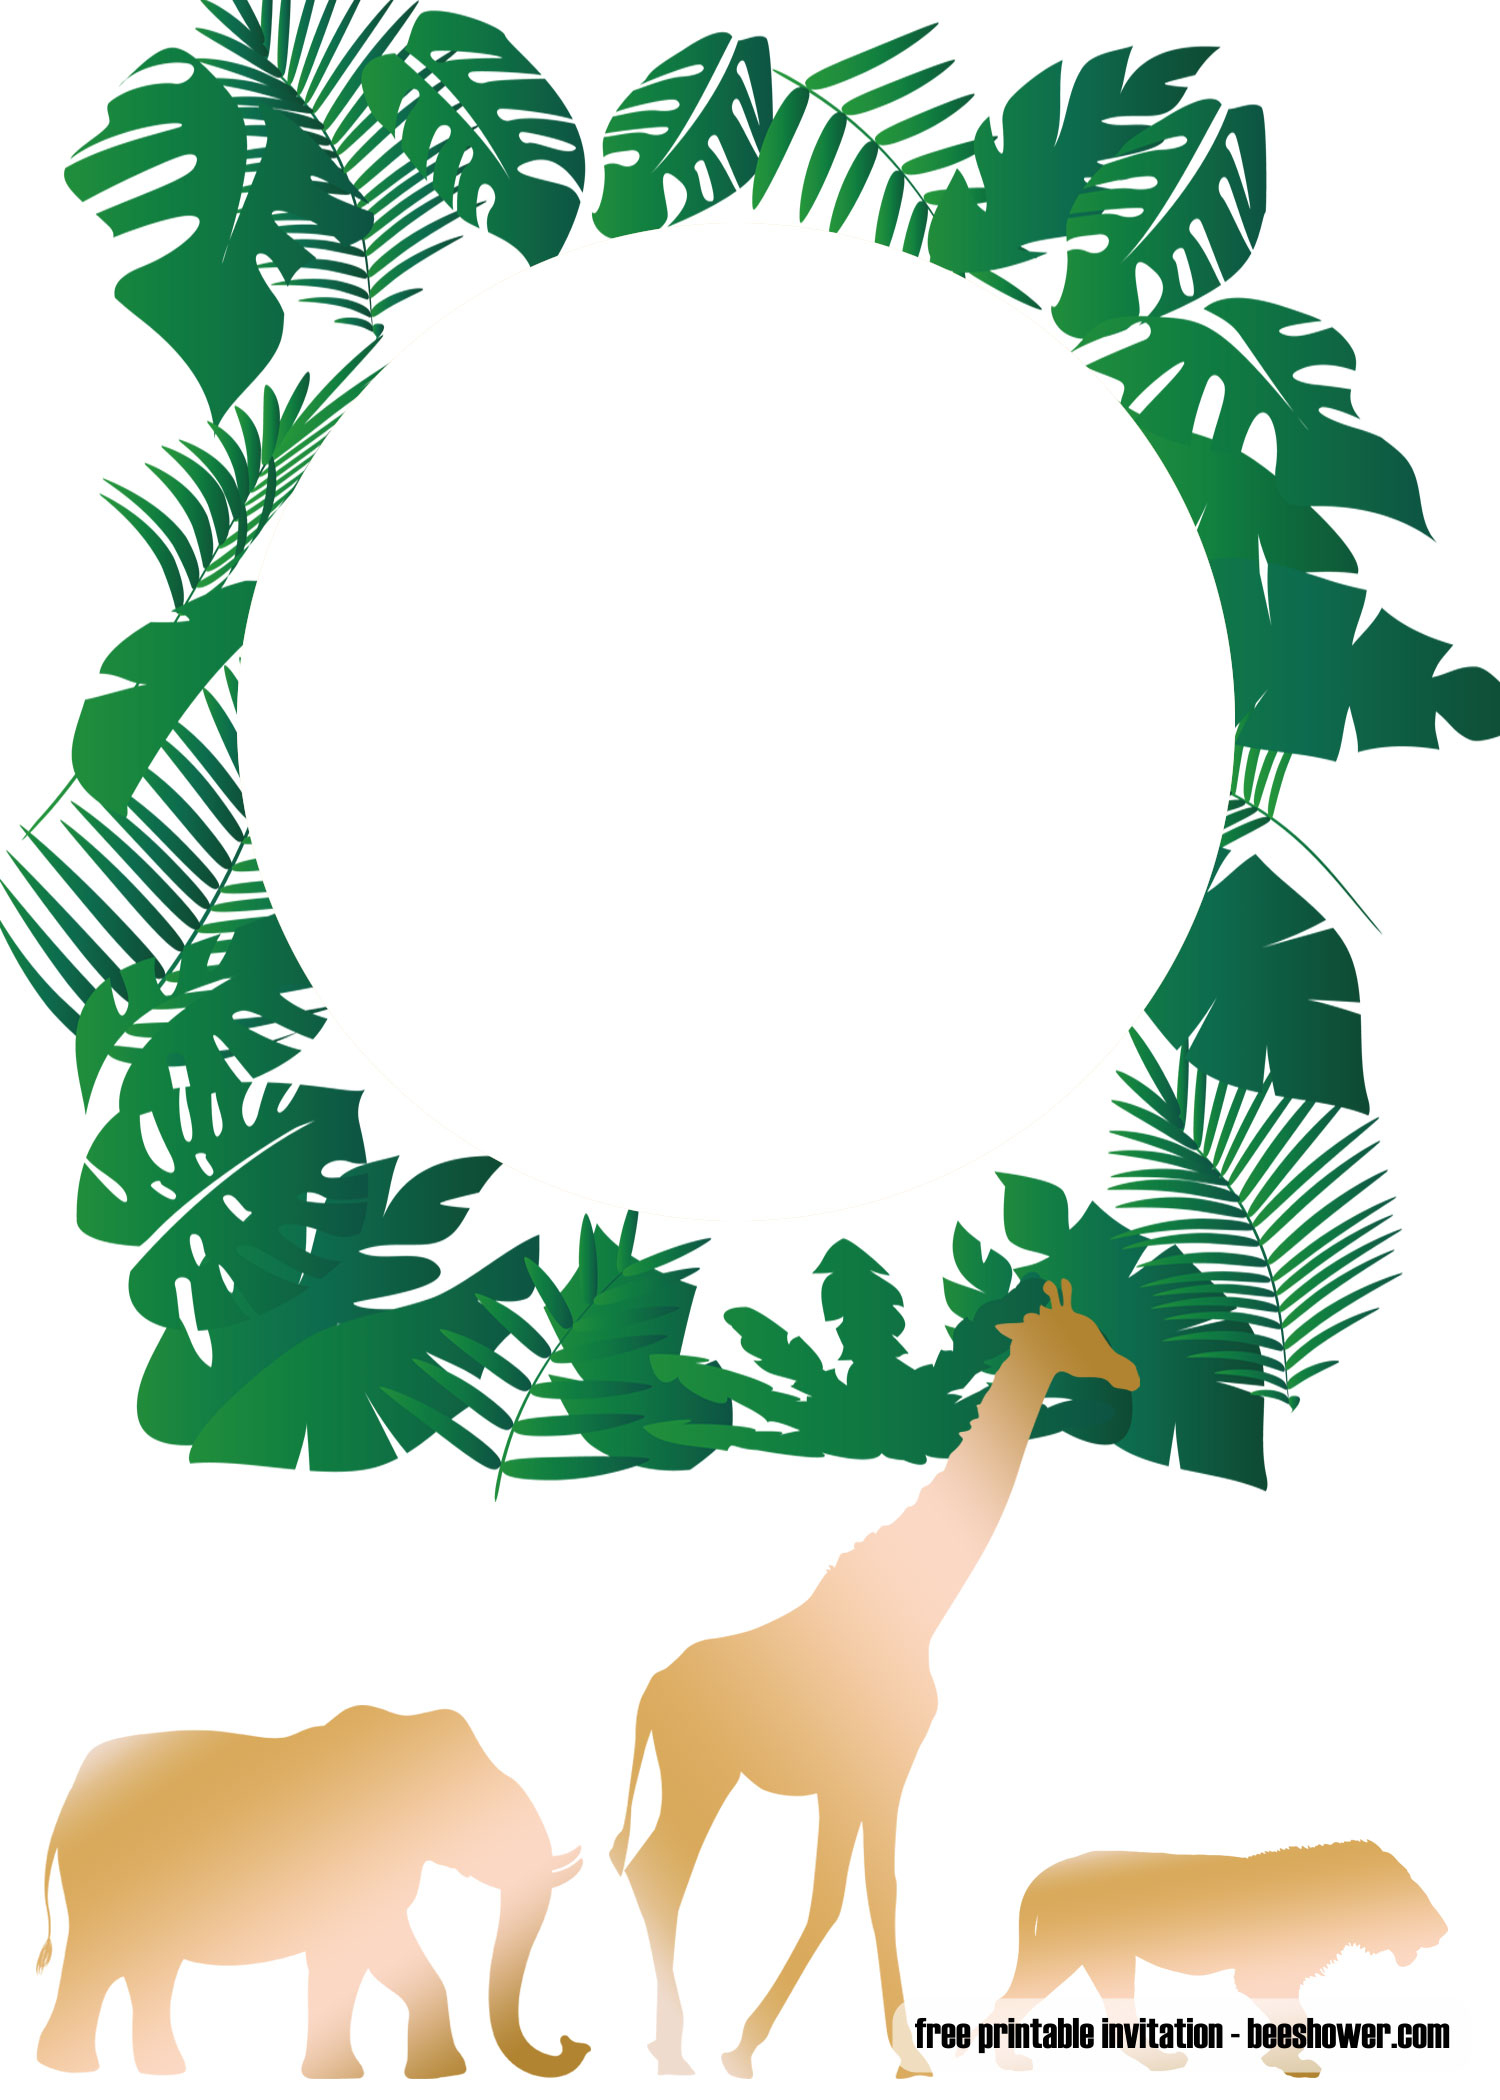 Free Printable Jungle Baby Shower Invitations Templates | Free - Free Printable John Deere Baby Shower Invitations